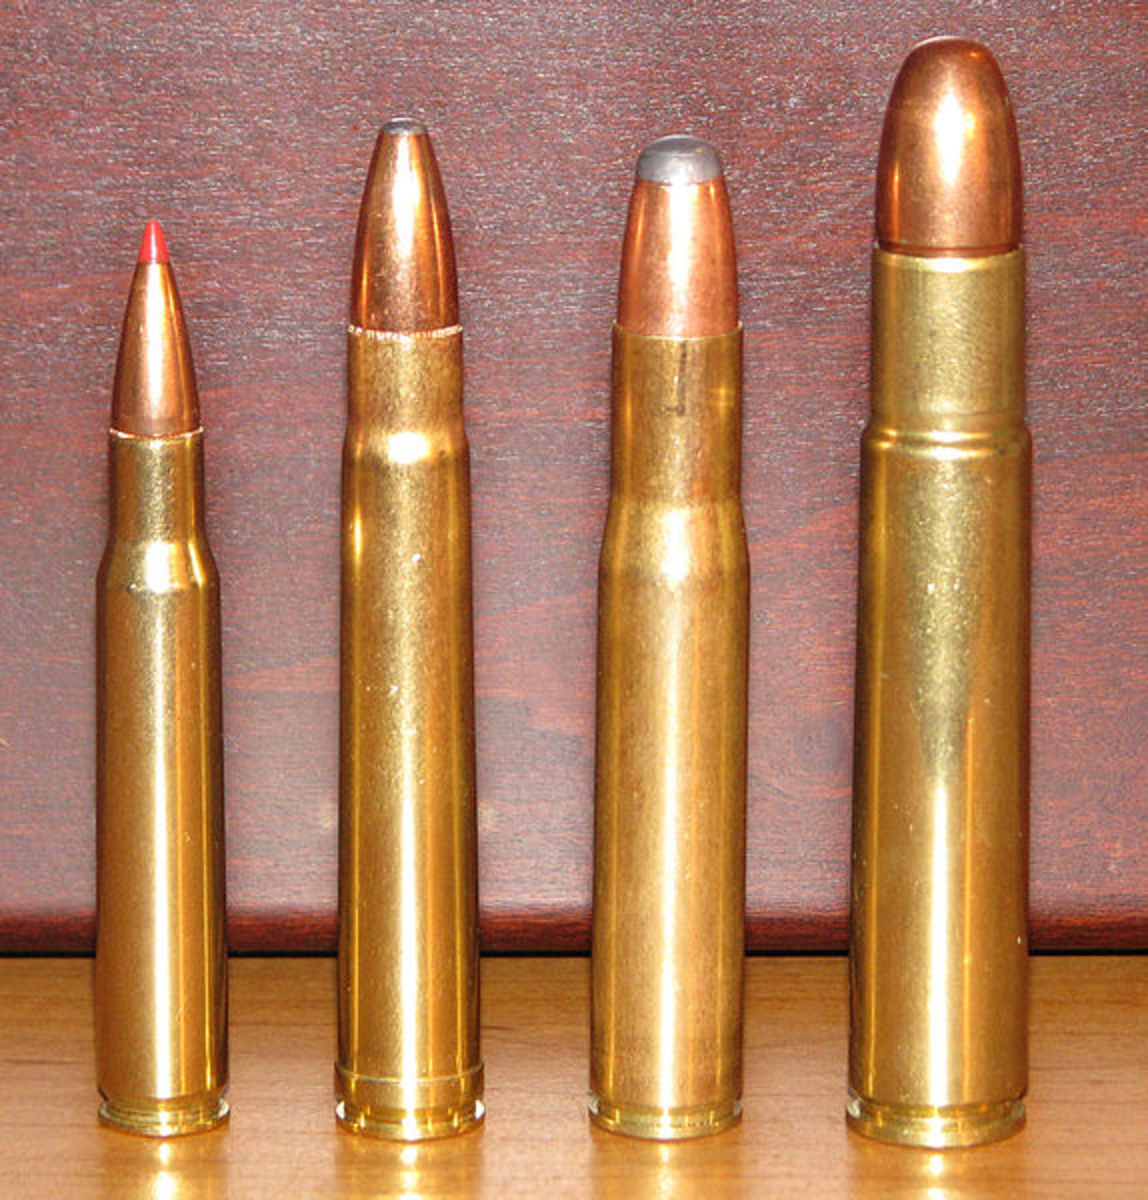 L-R: .30-06, .375 H&H, .404 Jeffery, .505 Gibbs